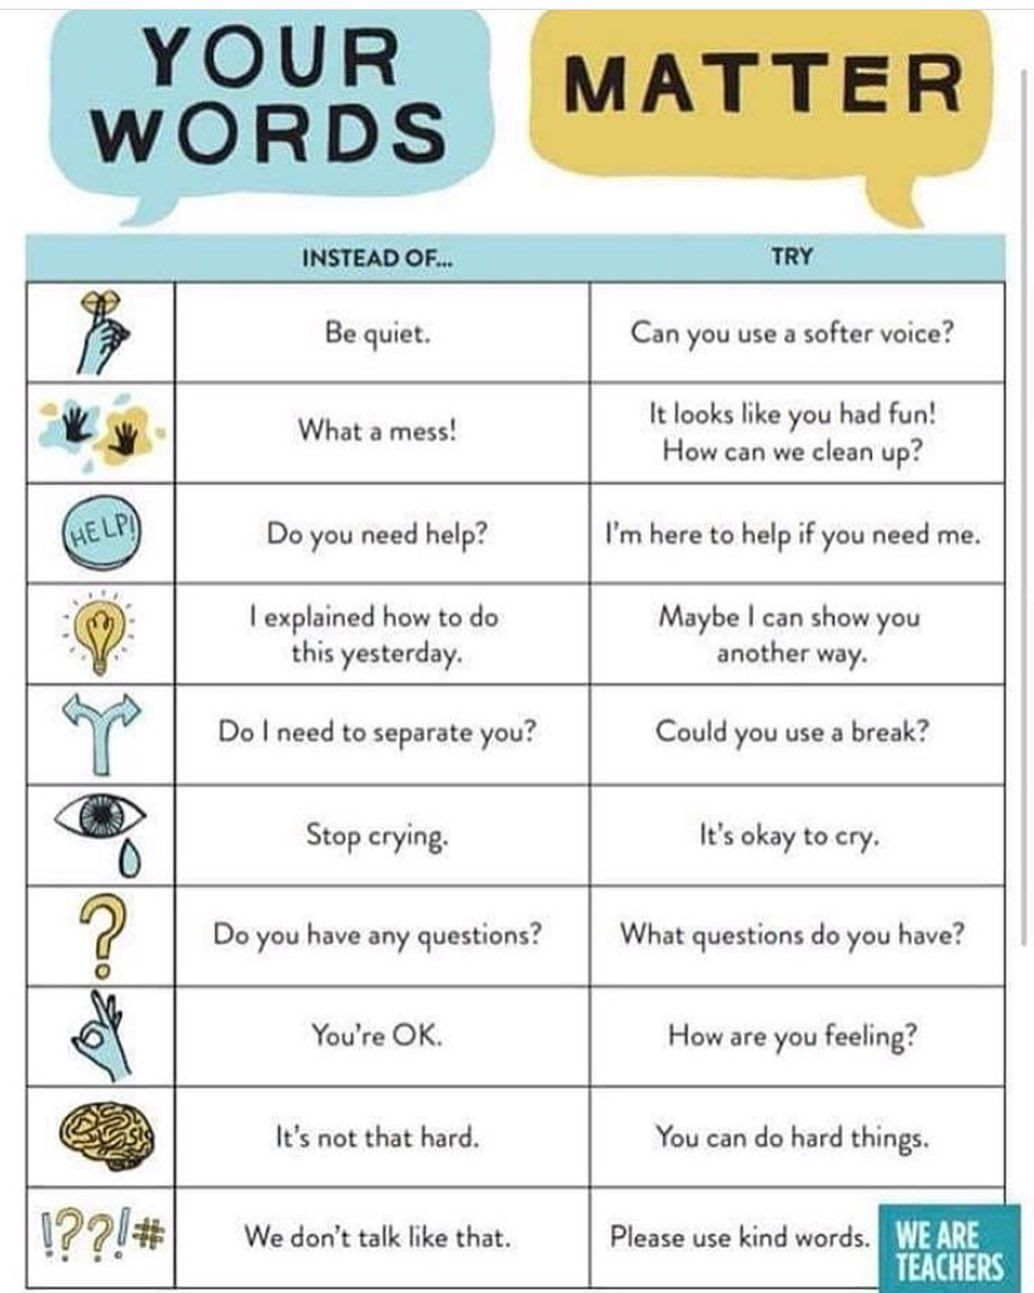 Your Words Matter Always Be Mindful How You Word Things